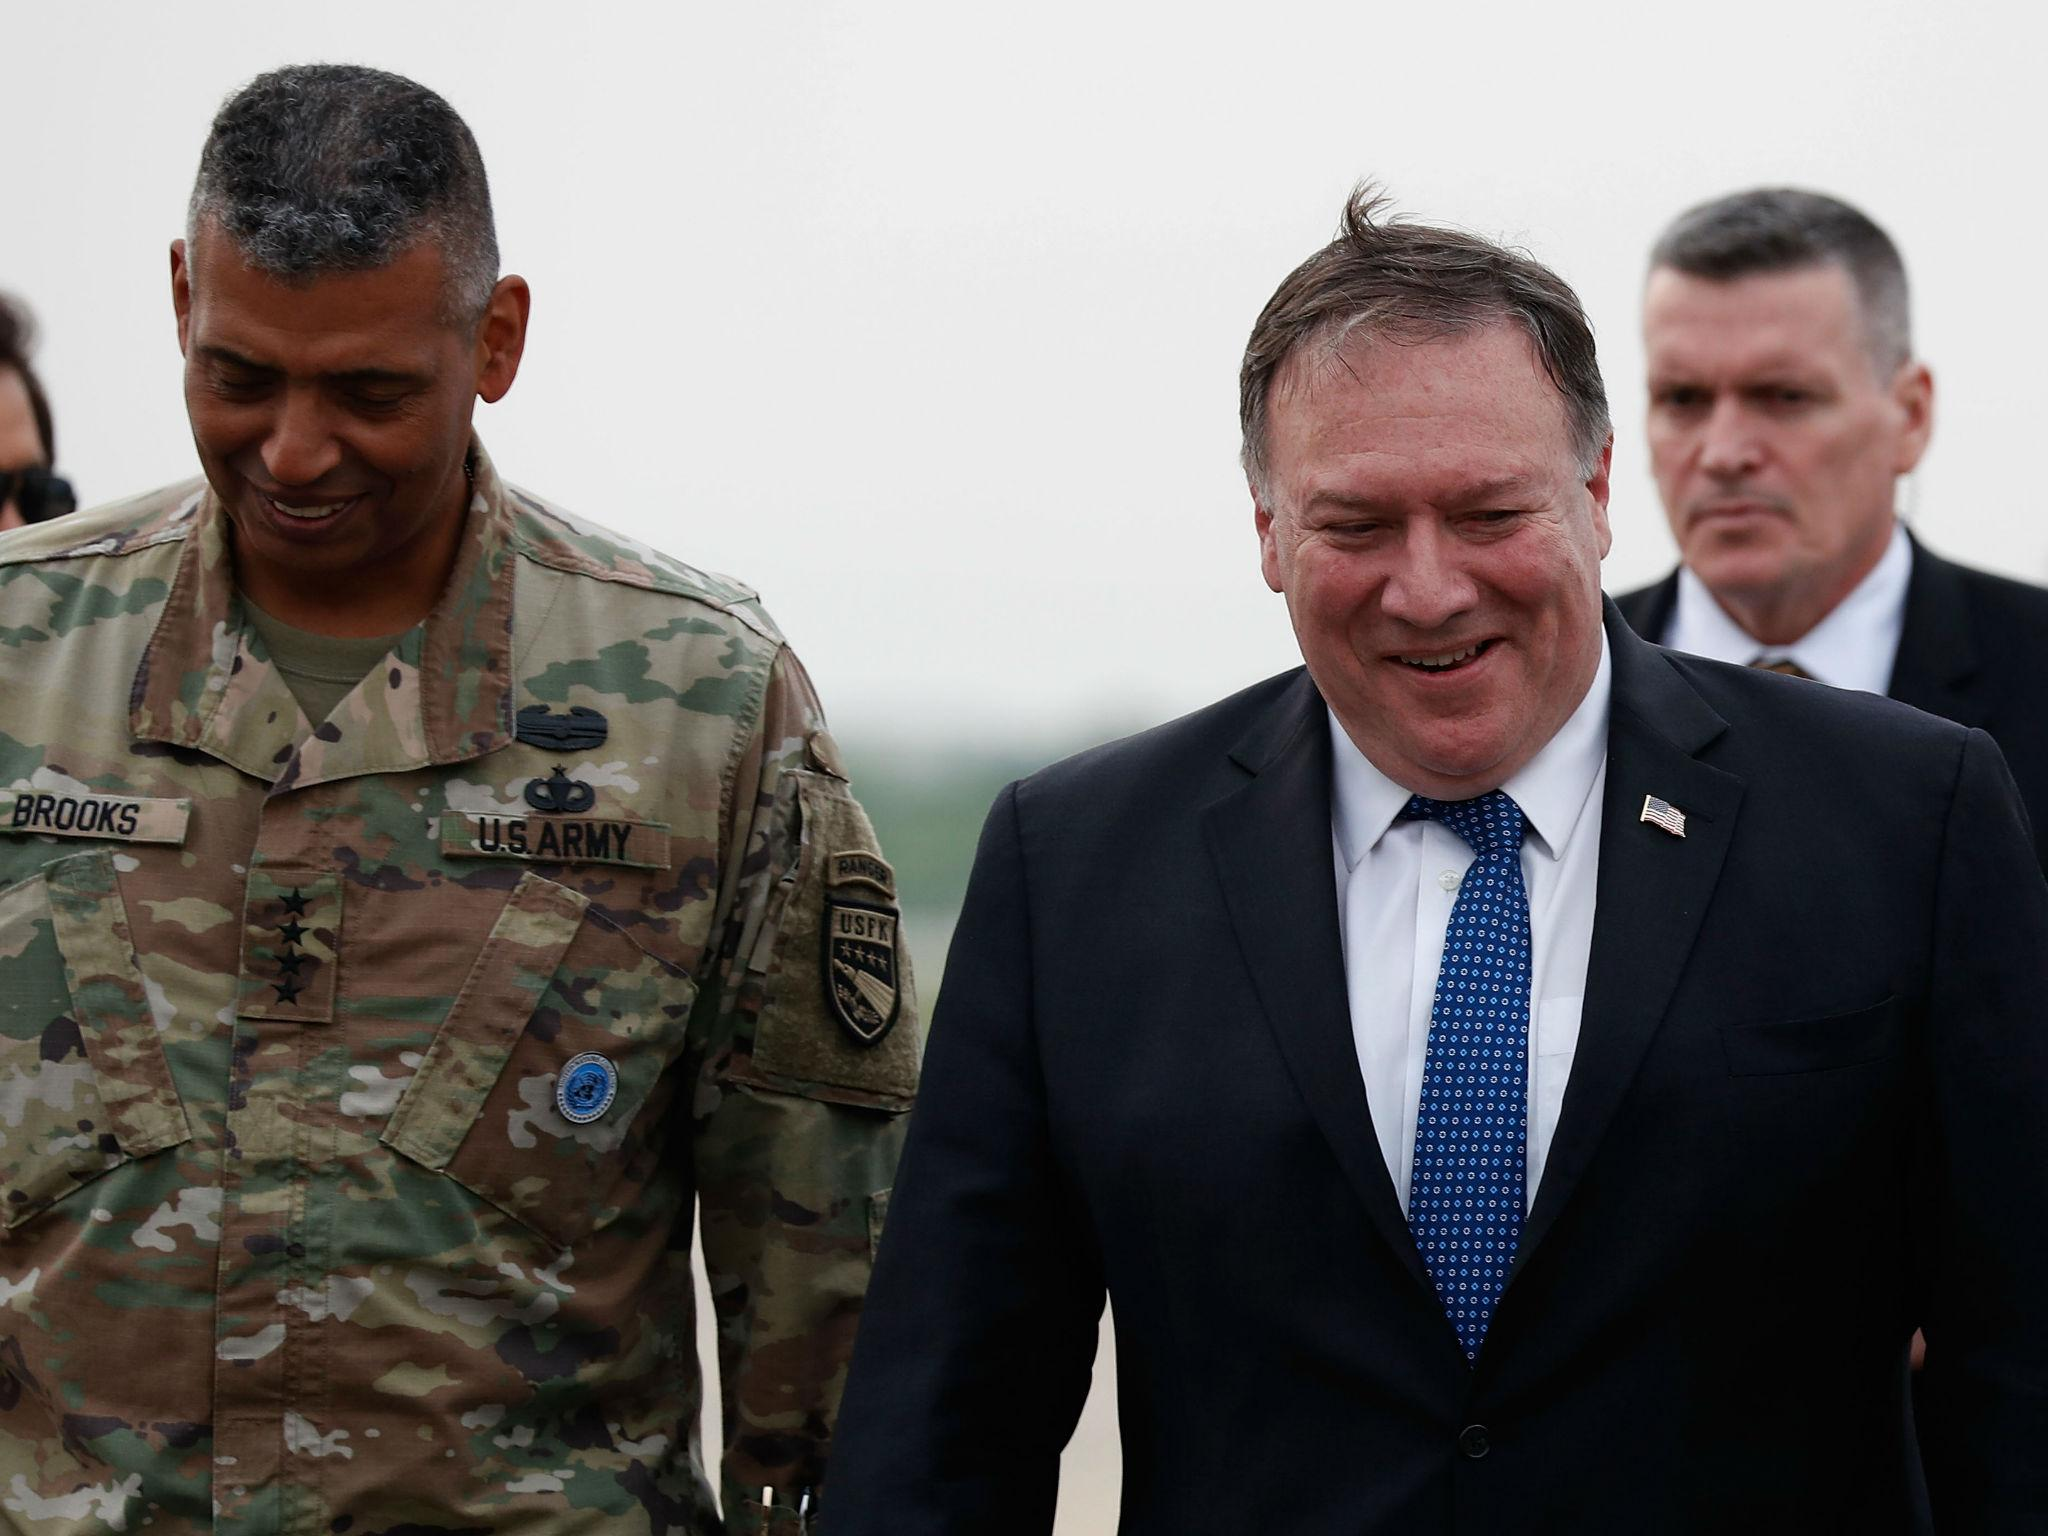 US would like to see 'major' North Korea nuclear disarmament in next two years, Mike Pompeo says